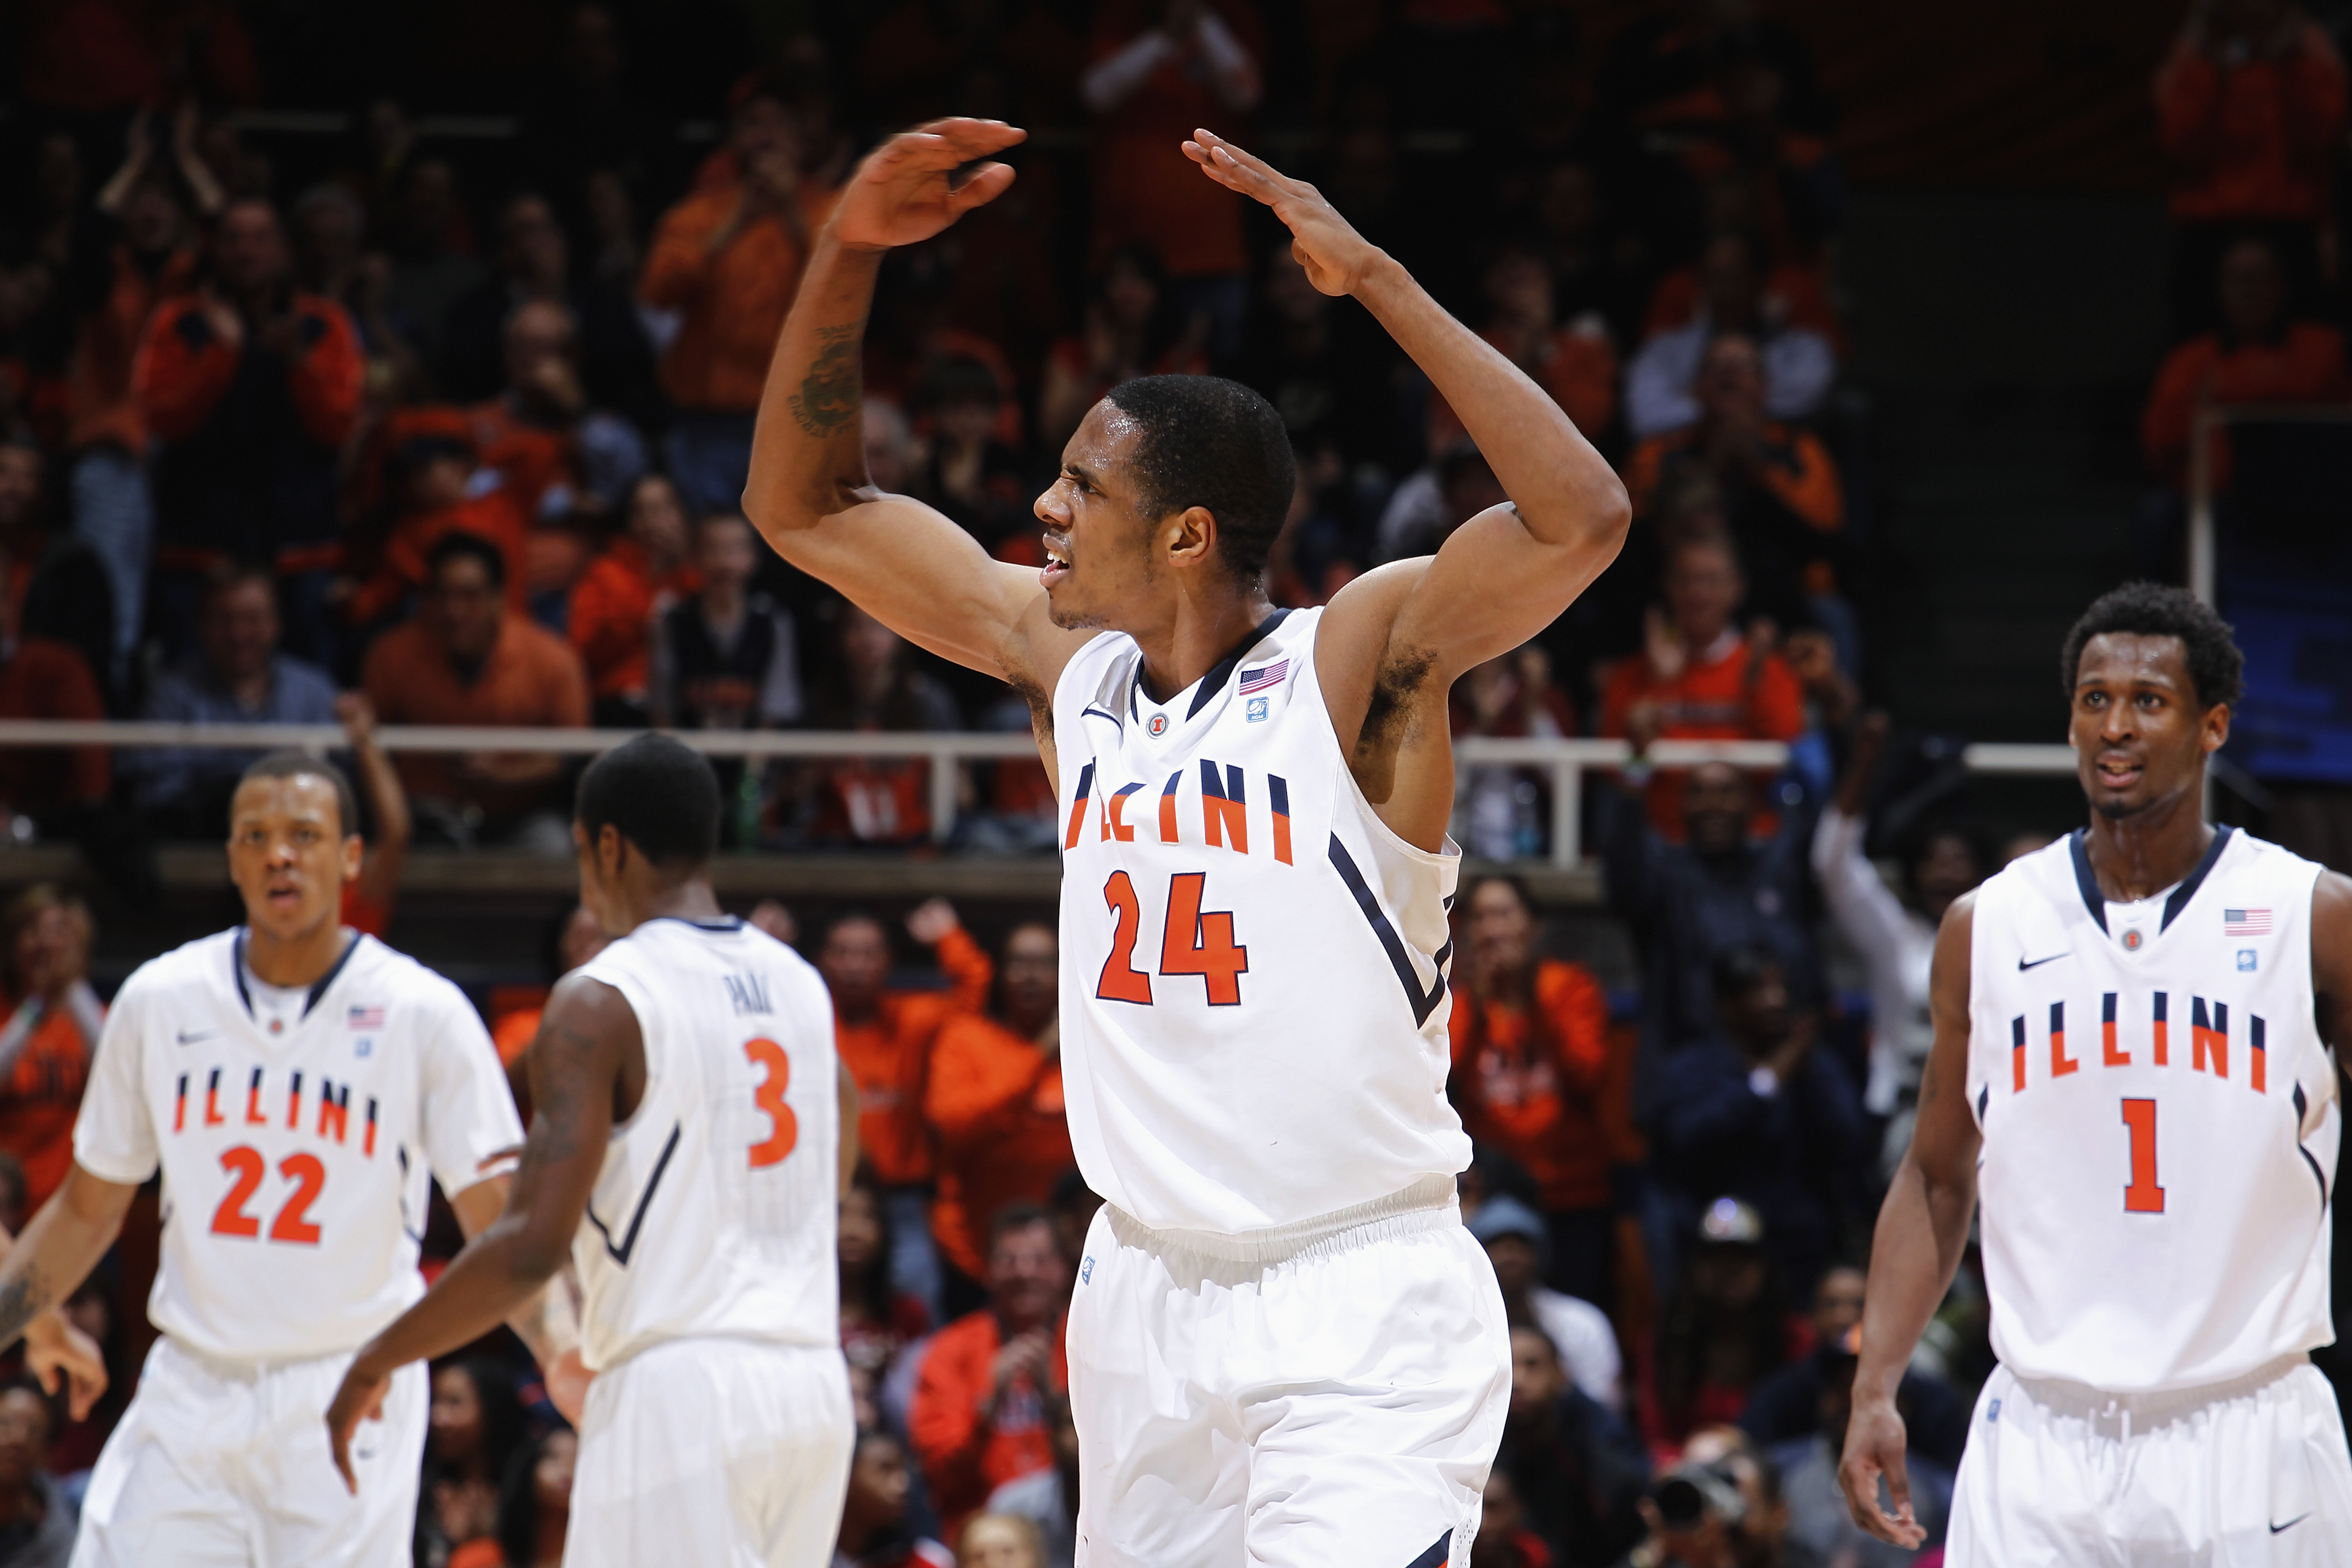 CHAMPAIGN, IL - FEBRUARY 13: Mike Davis #24 of the Illinois Fighting Illini tries to fire up the crowd against the Purdue Boilermakers at Assembly Hall on February 13, 2011 in Champaign, Illinois. Purdue defeated Illinois 81-70. (Photo by Joe Robbins/Gett